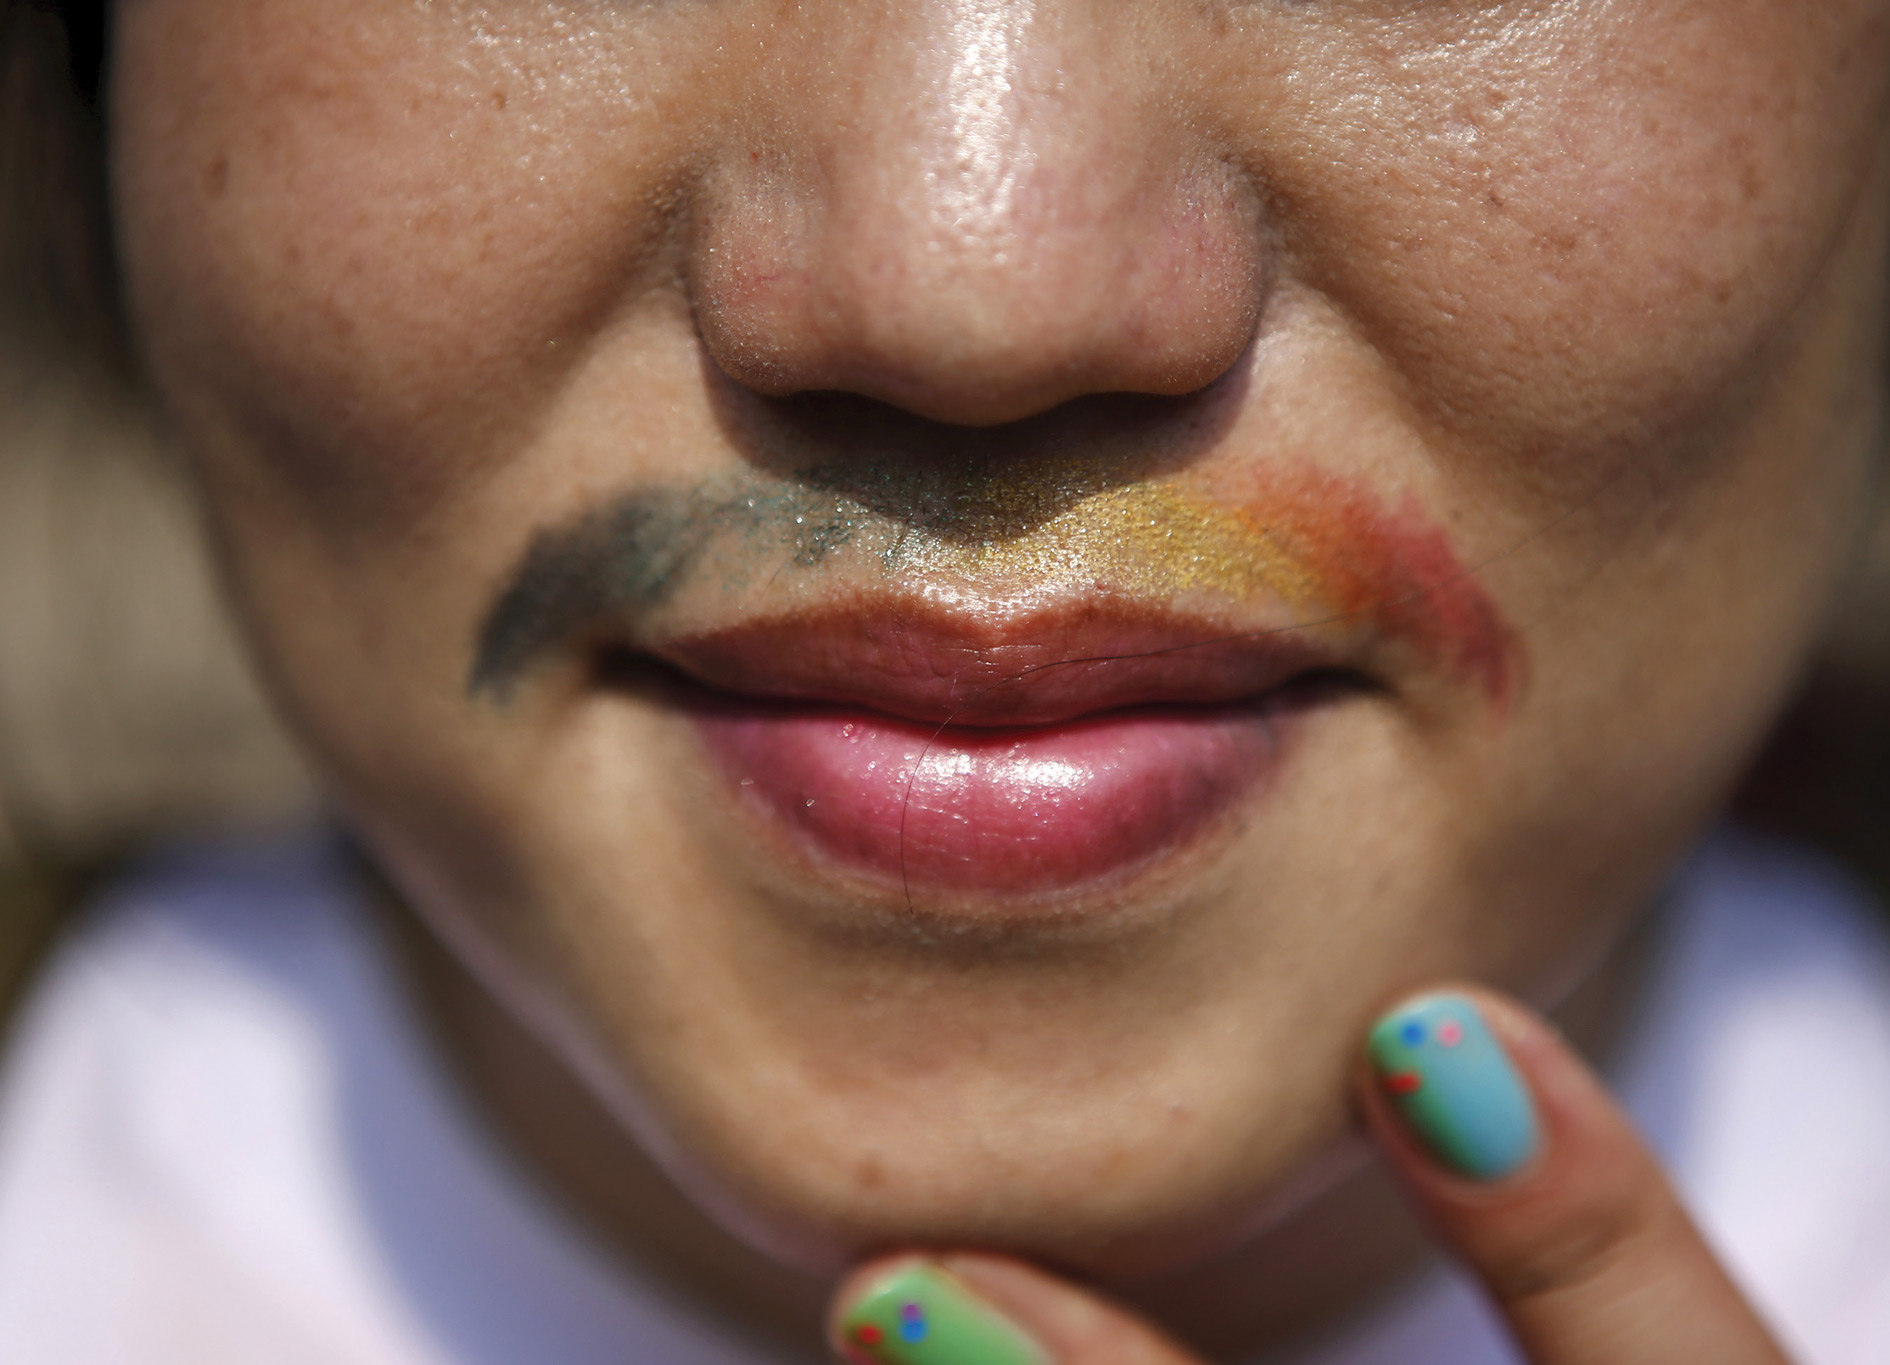 Expressing a gender spectrum on their face – a trans person takes part in the 2015 Korea Queer Festival, held in Seoul.